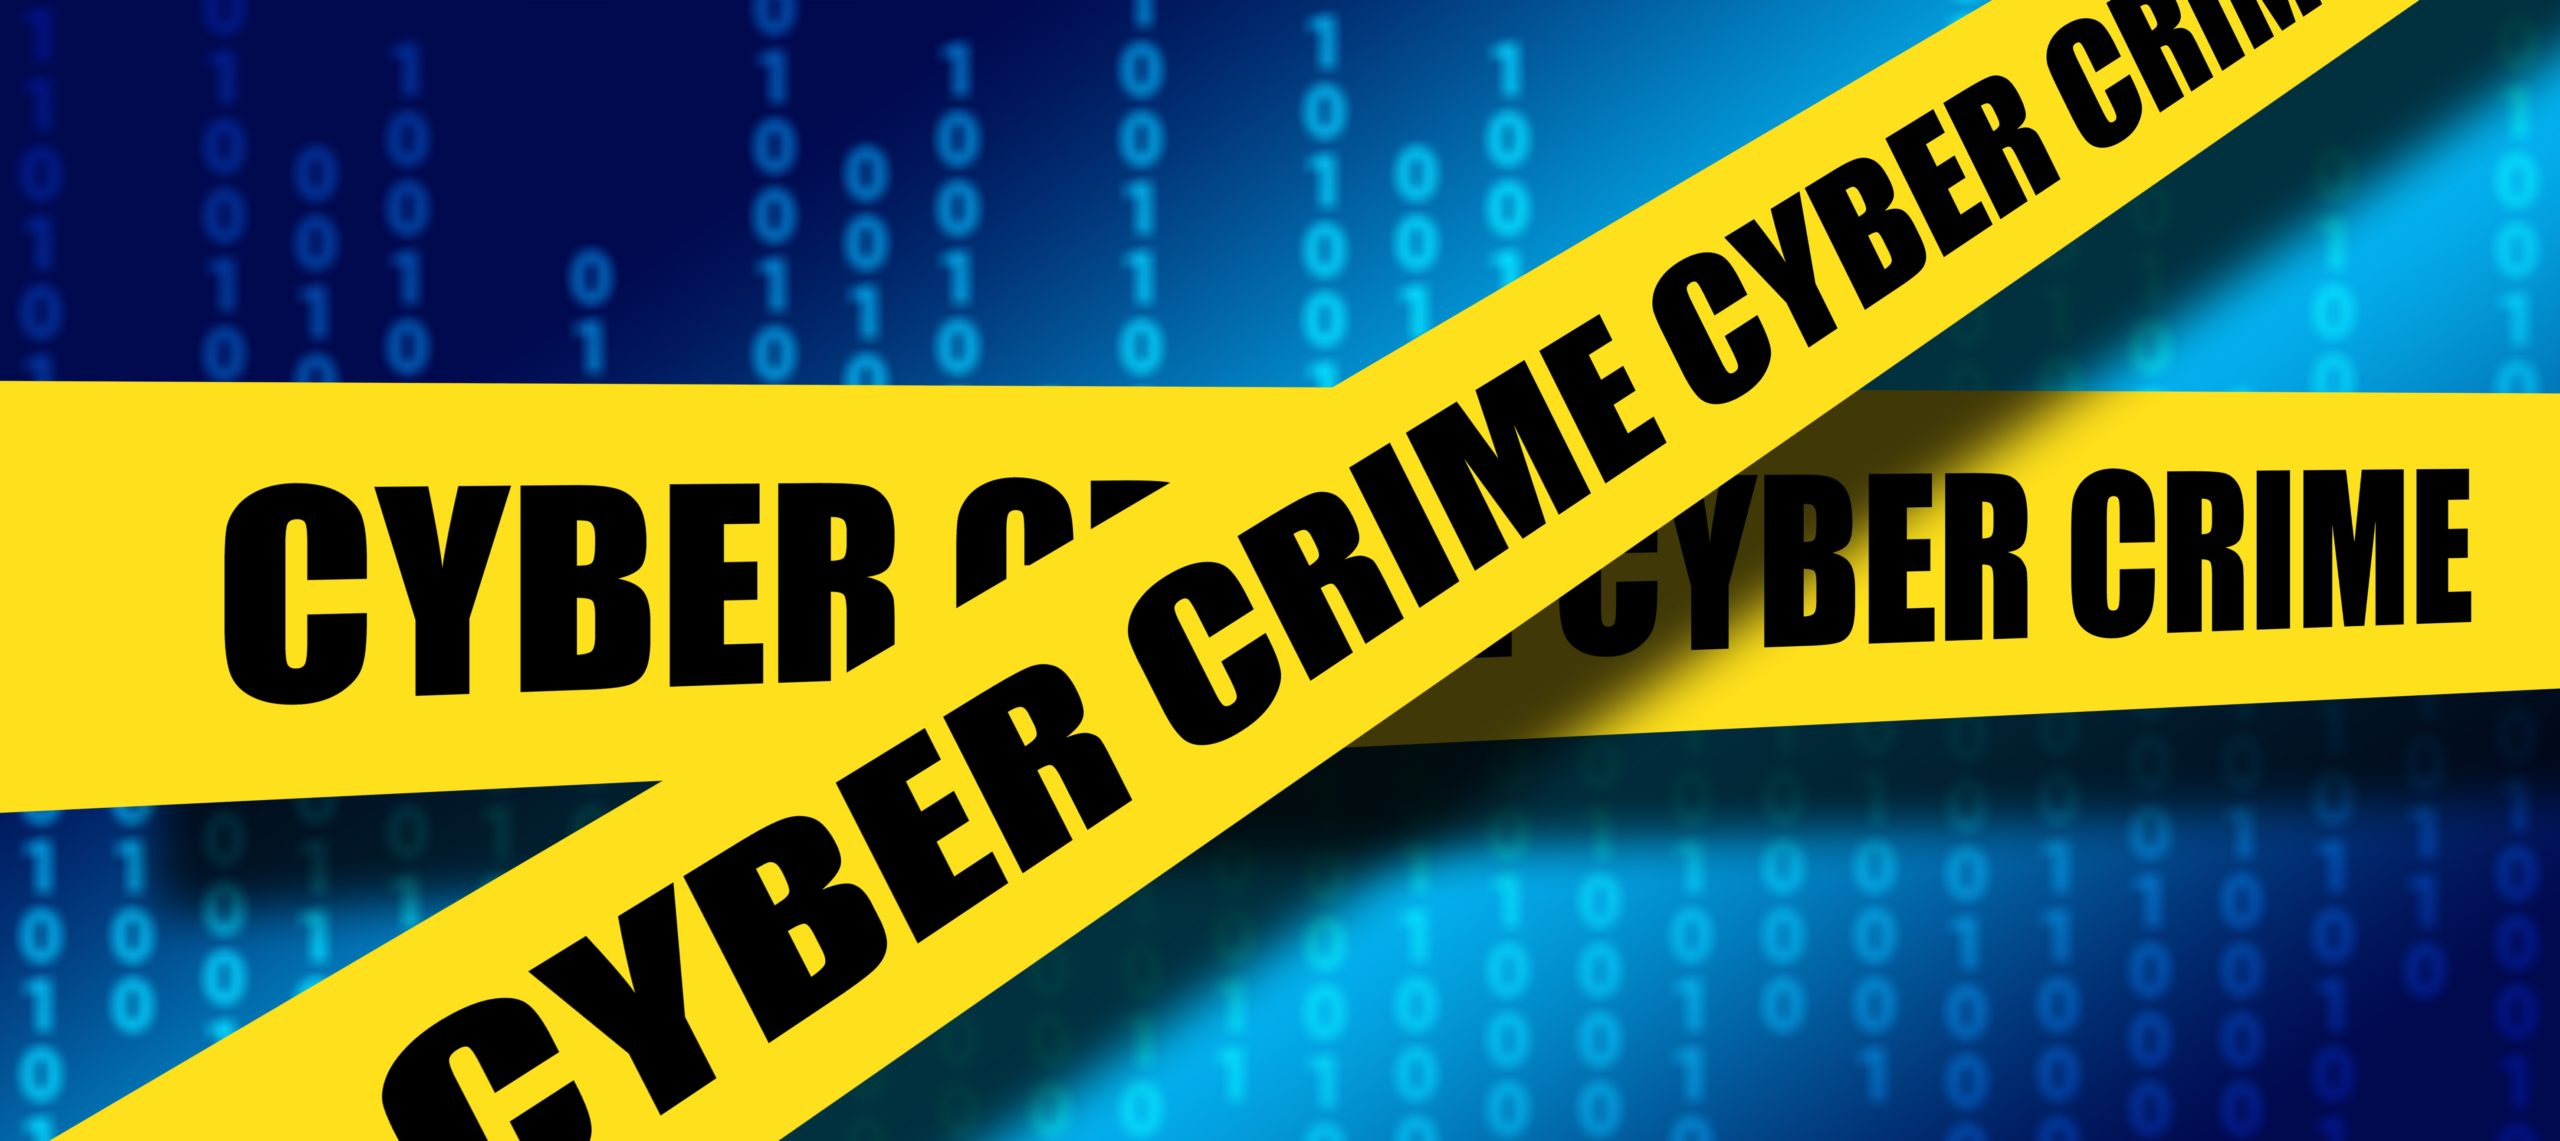 10 keys to improve your cyber resilience